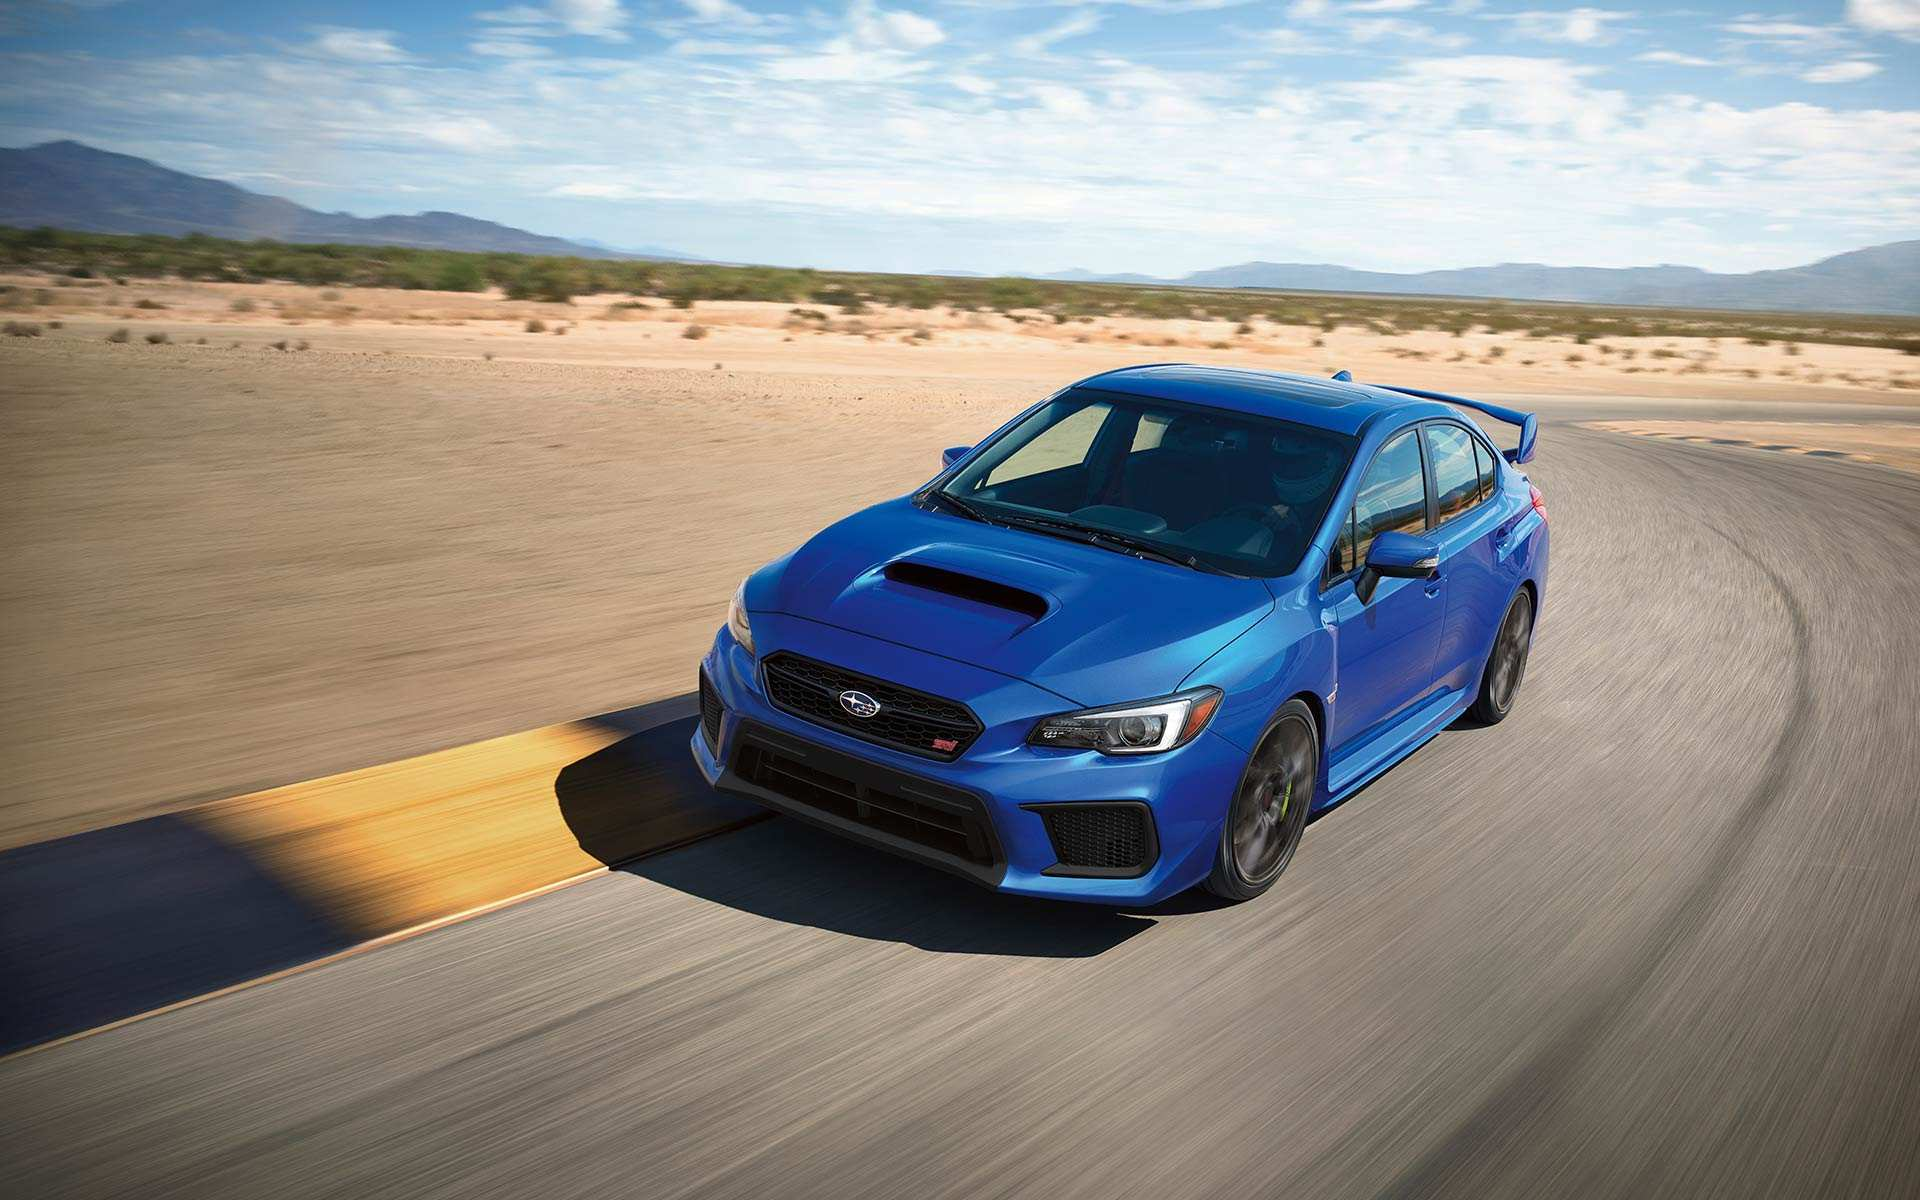 64 New 2019 Subaru Impreza Wrx Overview for 2019 Subaru Impreza Wrx